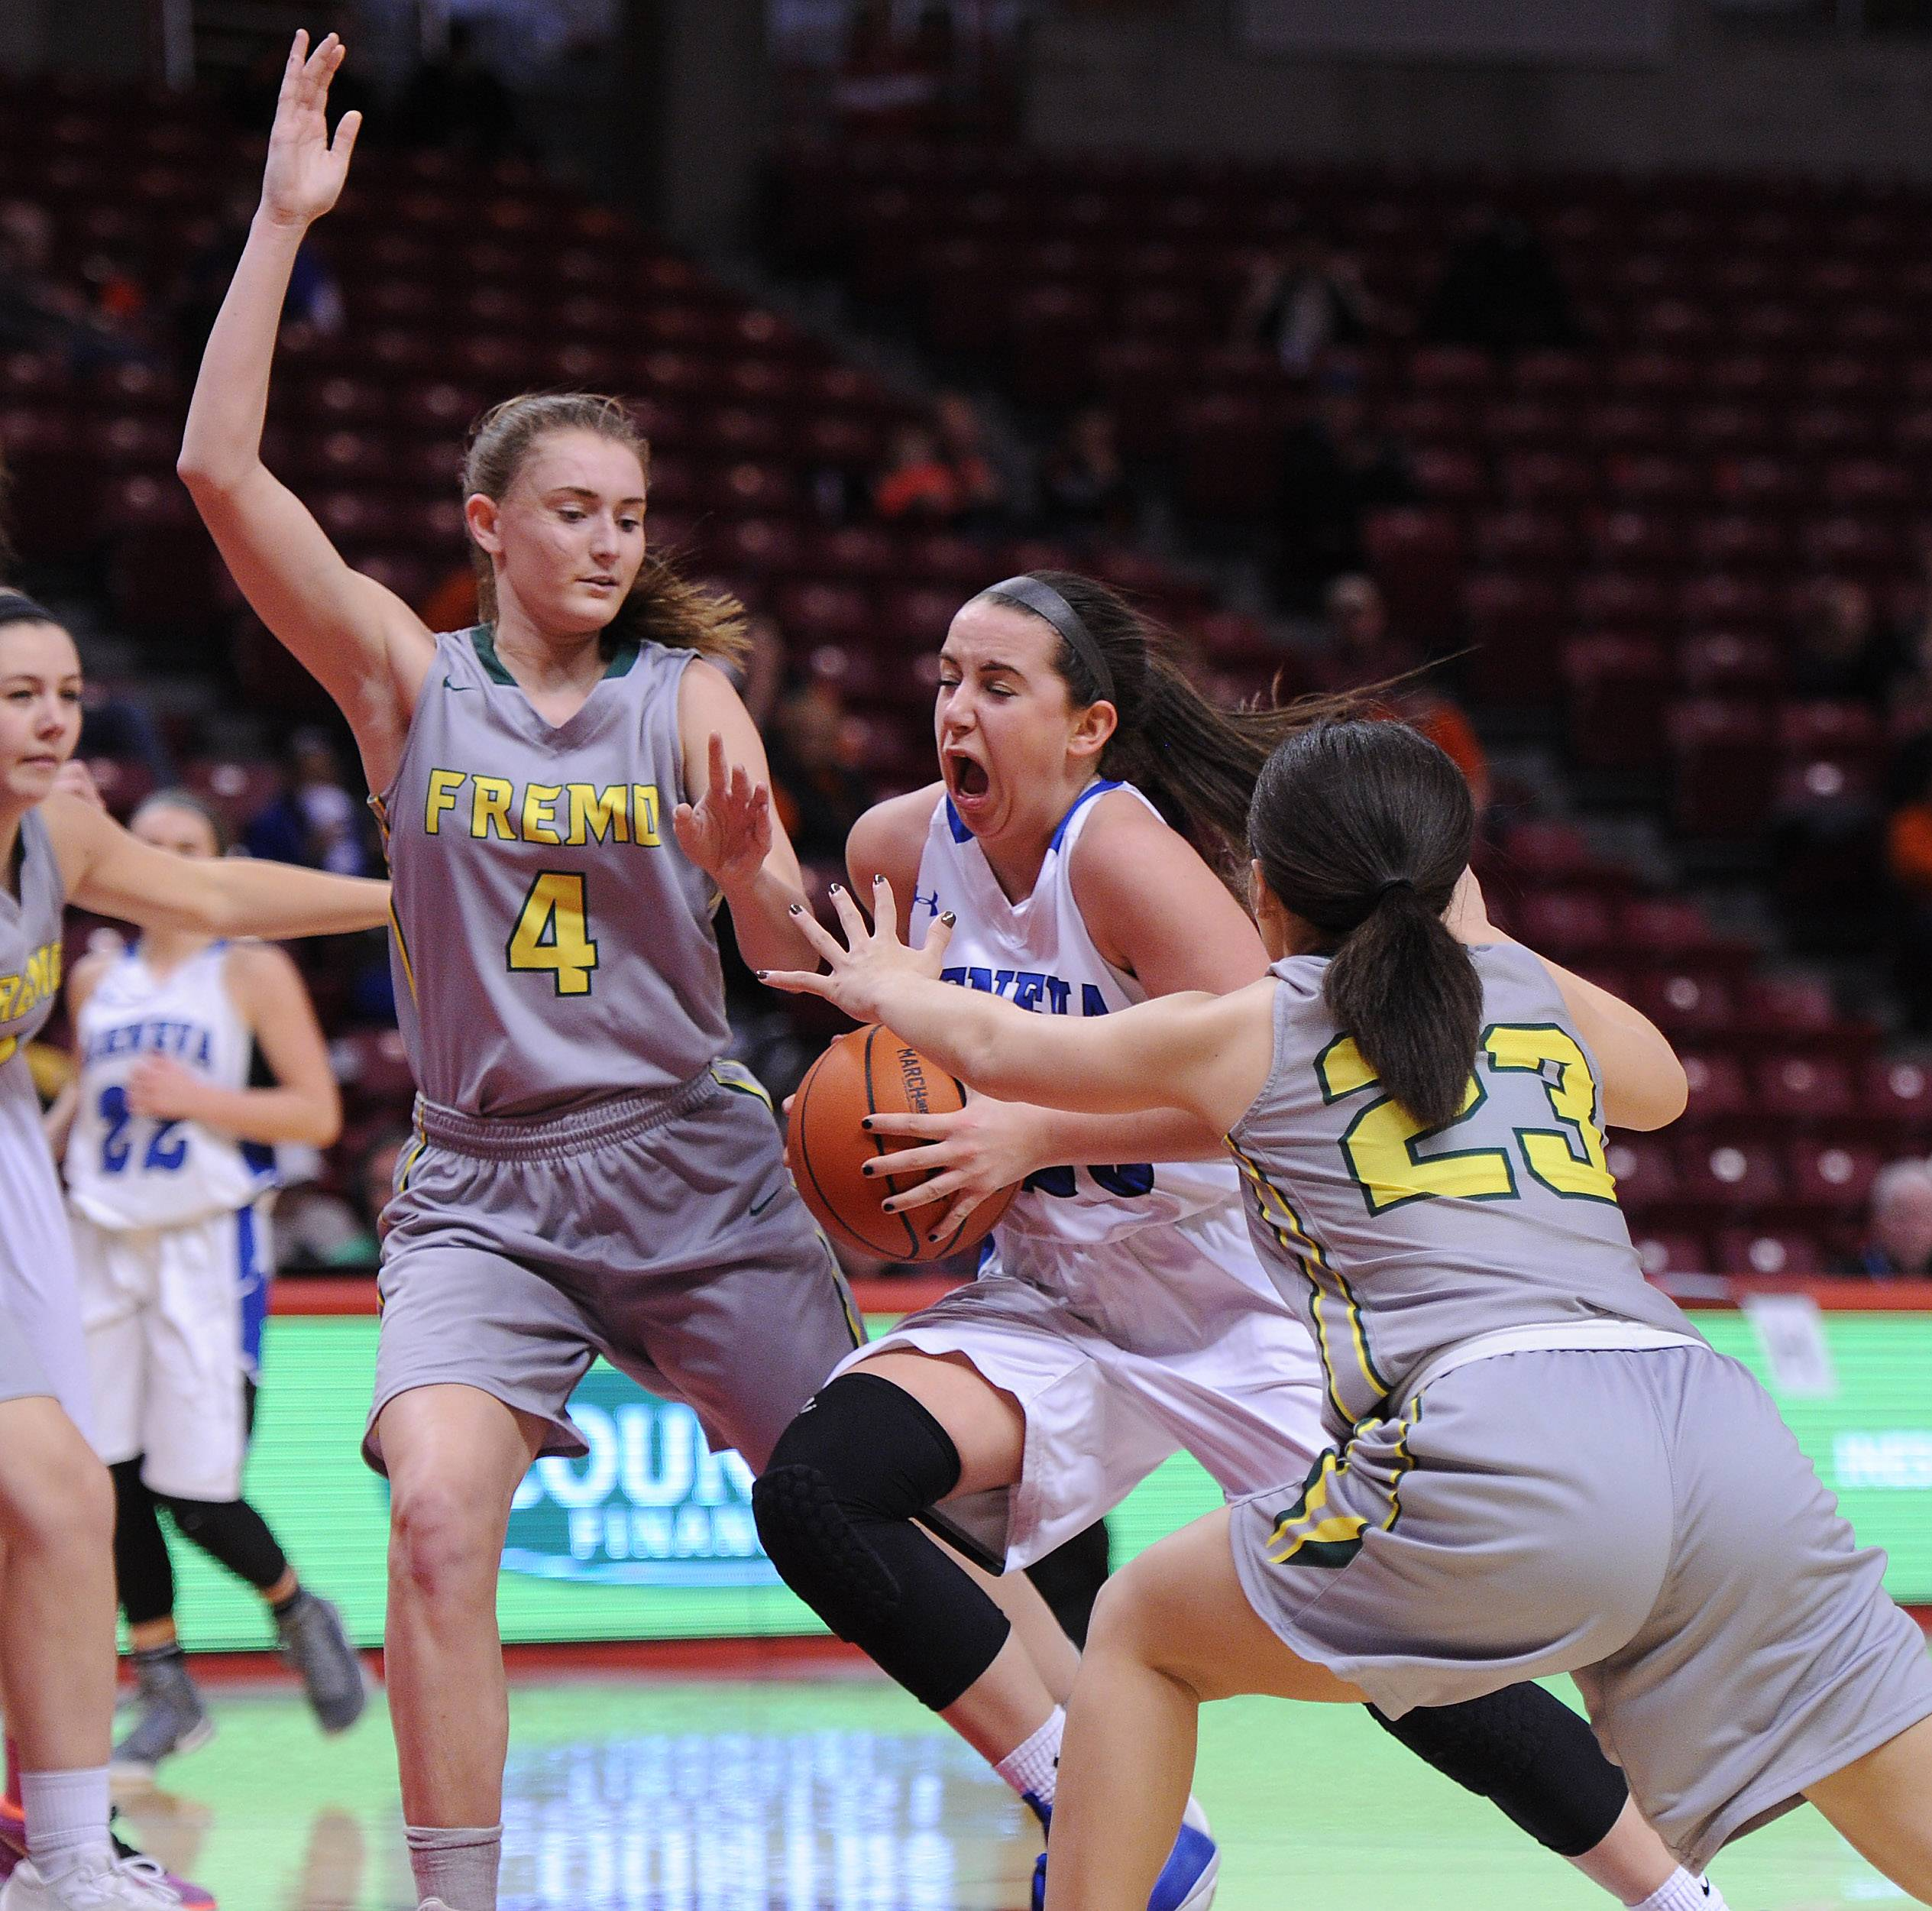 Geneva's Margaret Whitley powers her way through Fremd defenders Missy Adrian and Hayley Williams in the first half of the Class 4A girls basketball state semifinals in Normal on Friday.